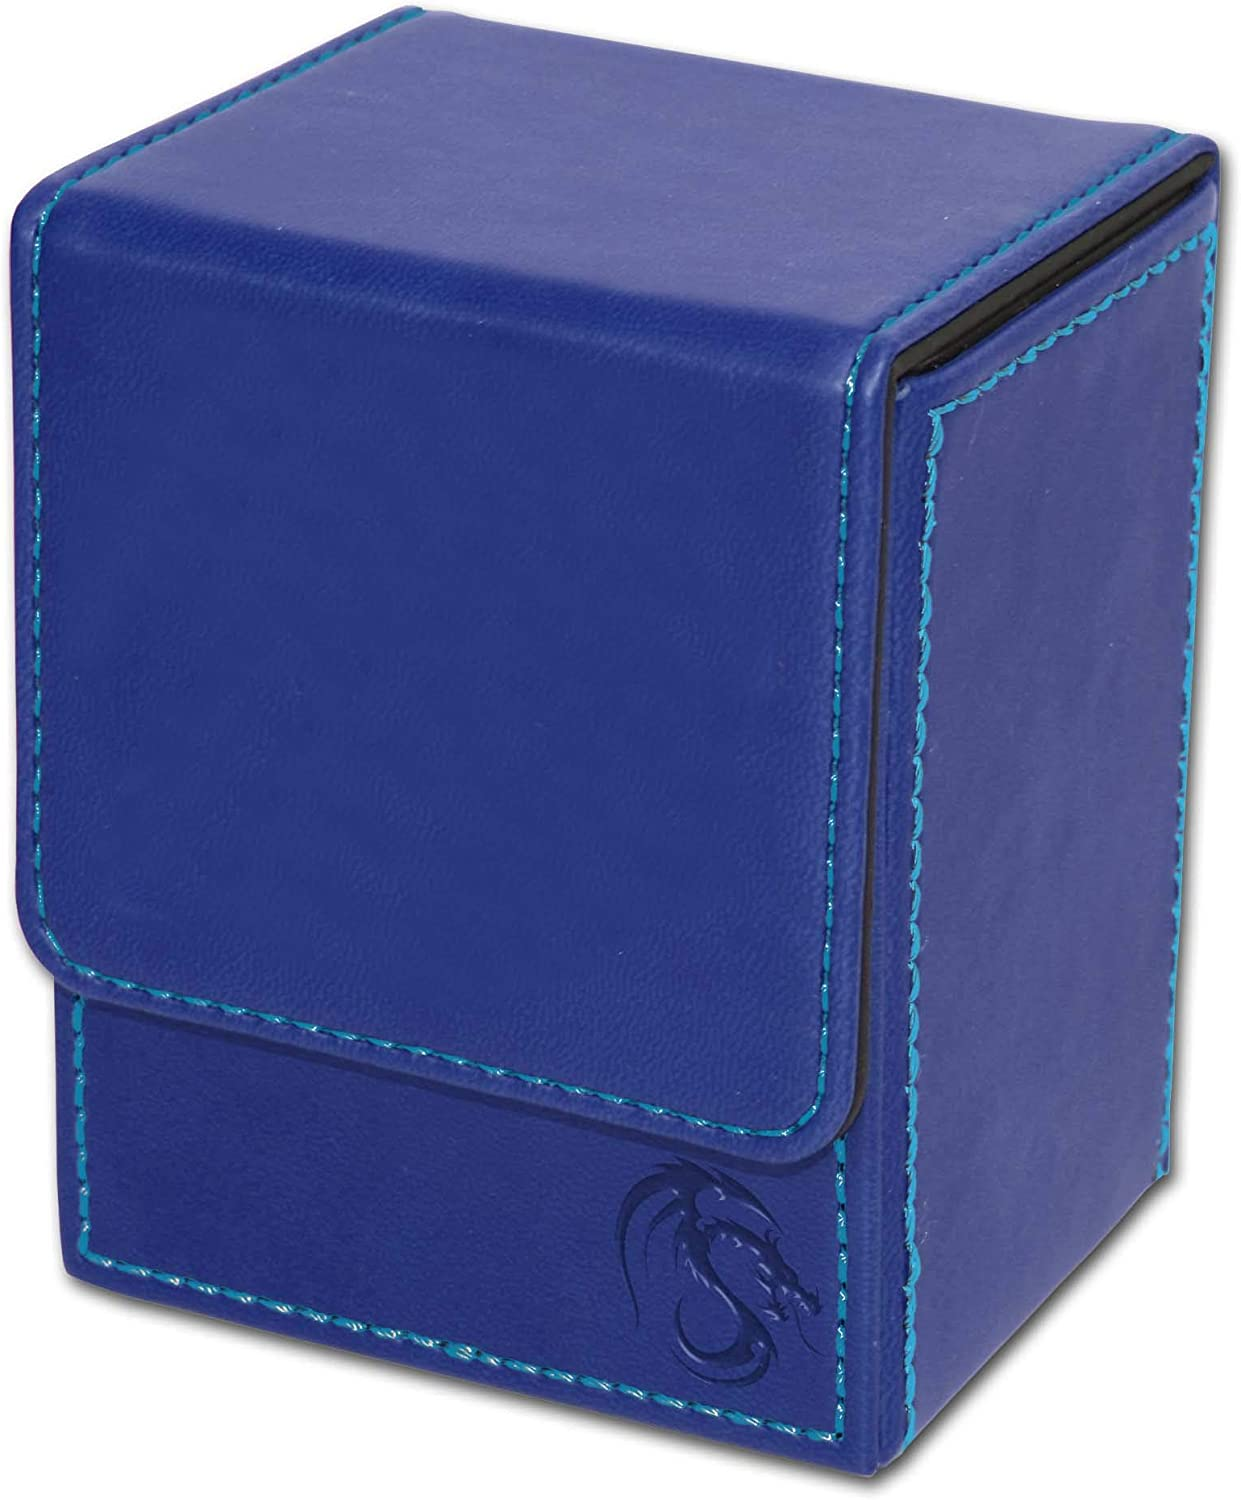 5 BCW BLUE DECK CASE MAGIC THE GATHERING MTG DECK PROTECTOR BOX